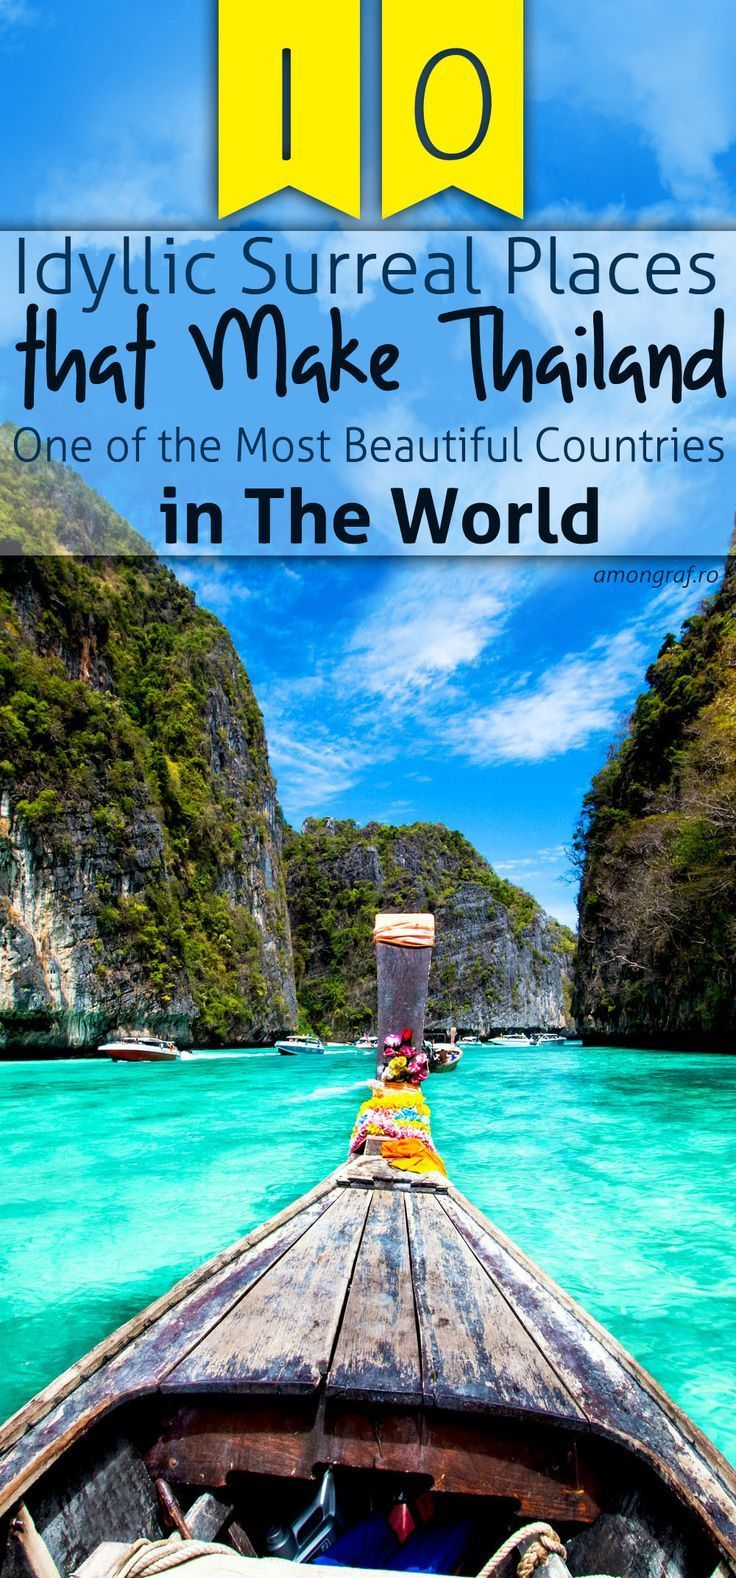 Best 25 World Most Beautiful Place Ideas On Pinterest World 39 S Most Beautiful World Beautiful